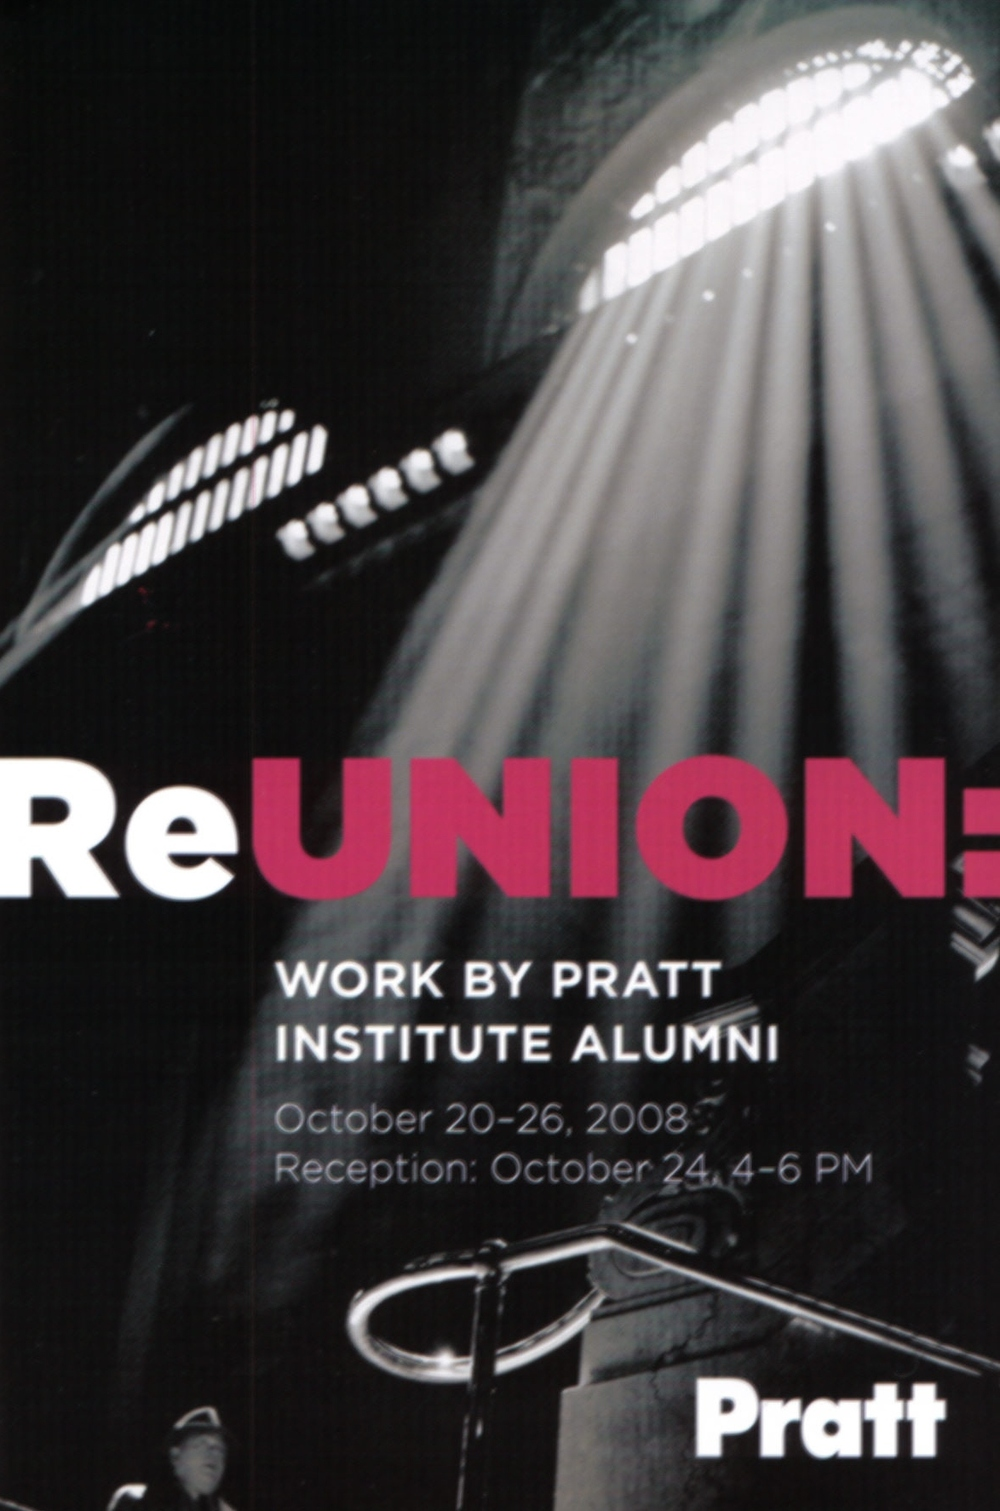 ReUnion_Pratt_Exhibit_Oct_2008.jpg